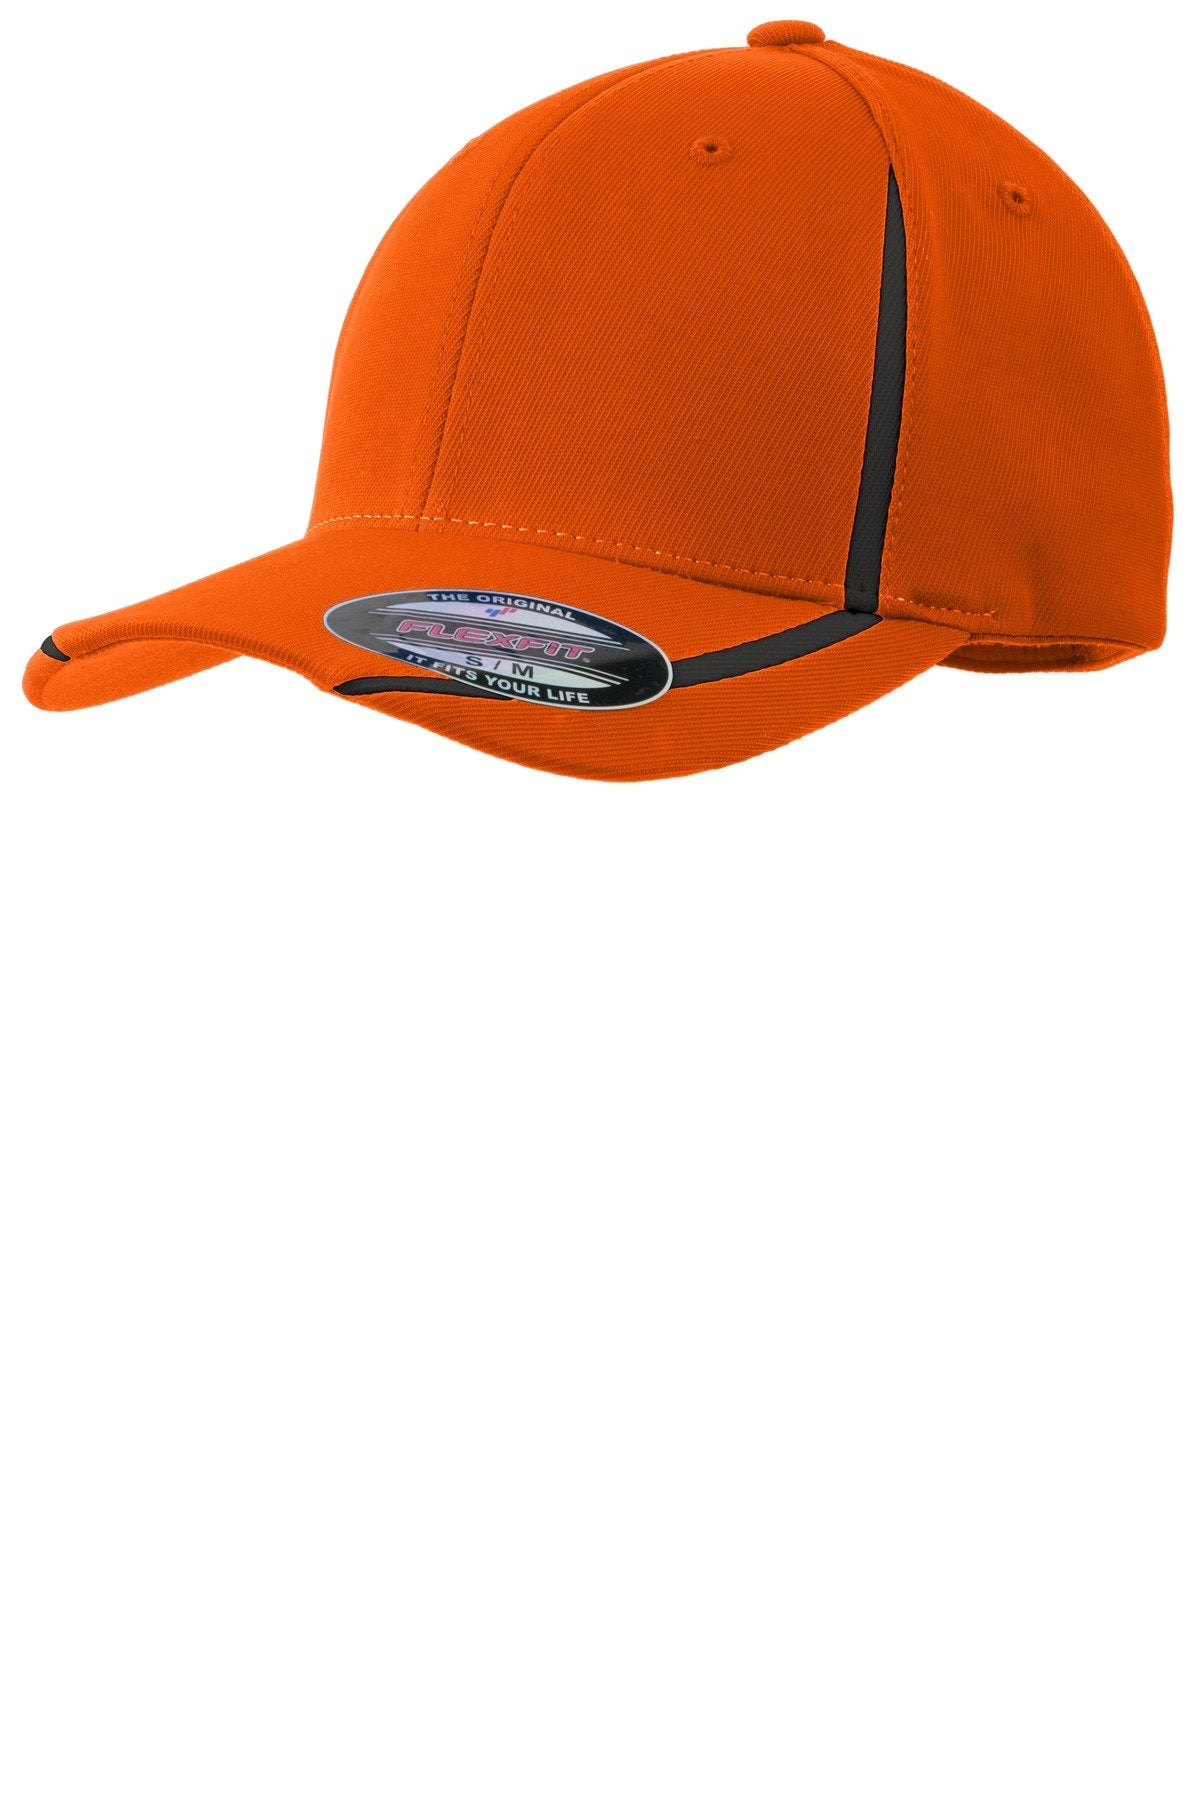 Deep Orange/Black - Sport-Tek STC16